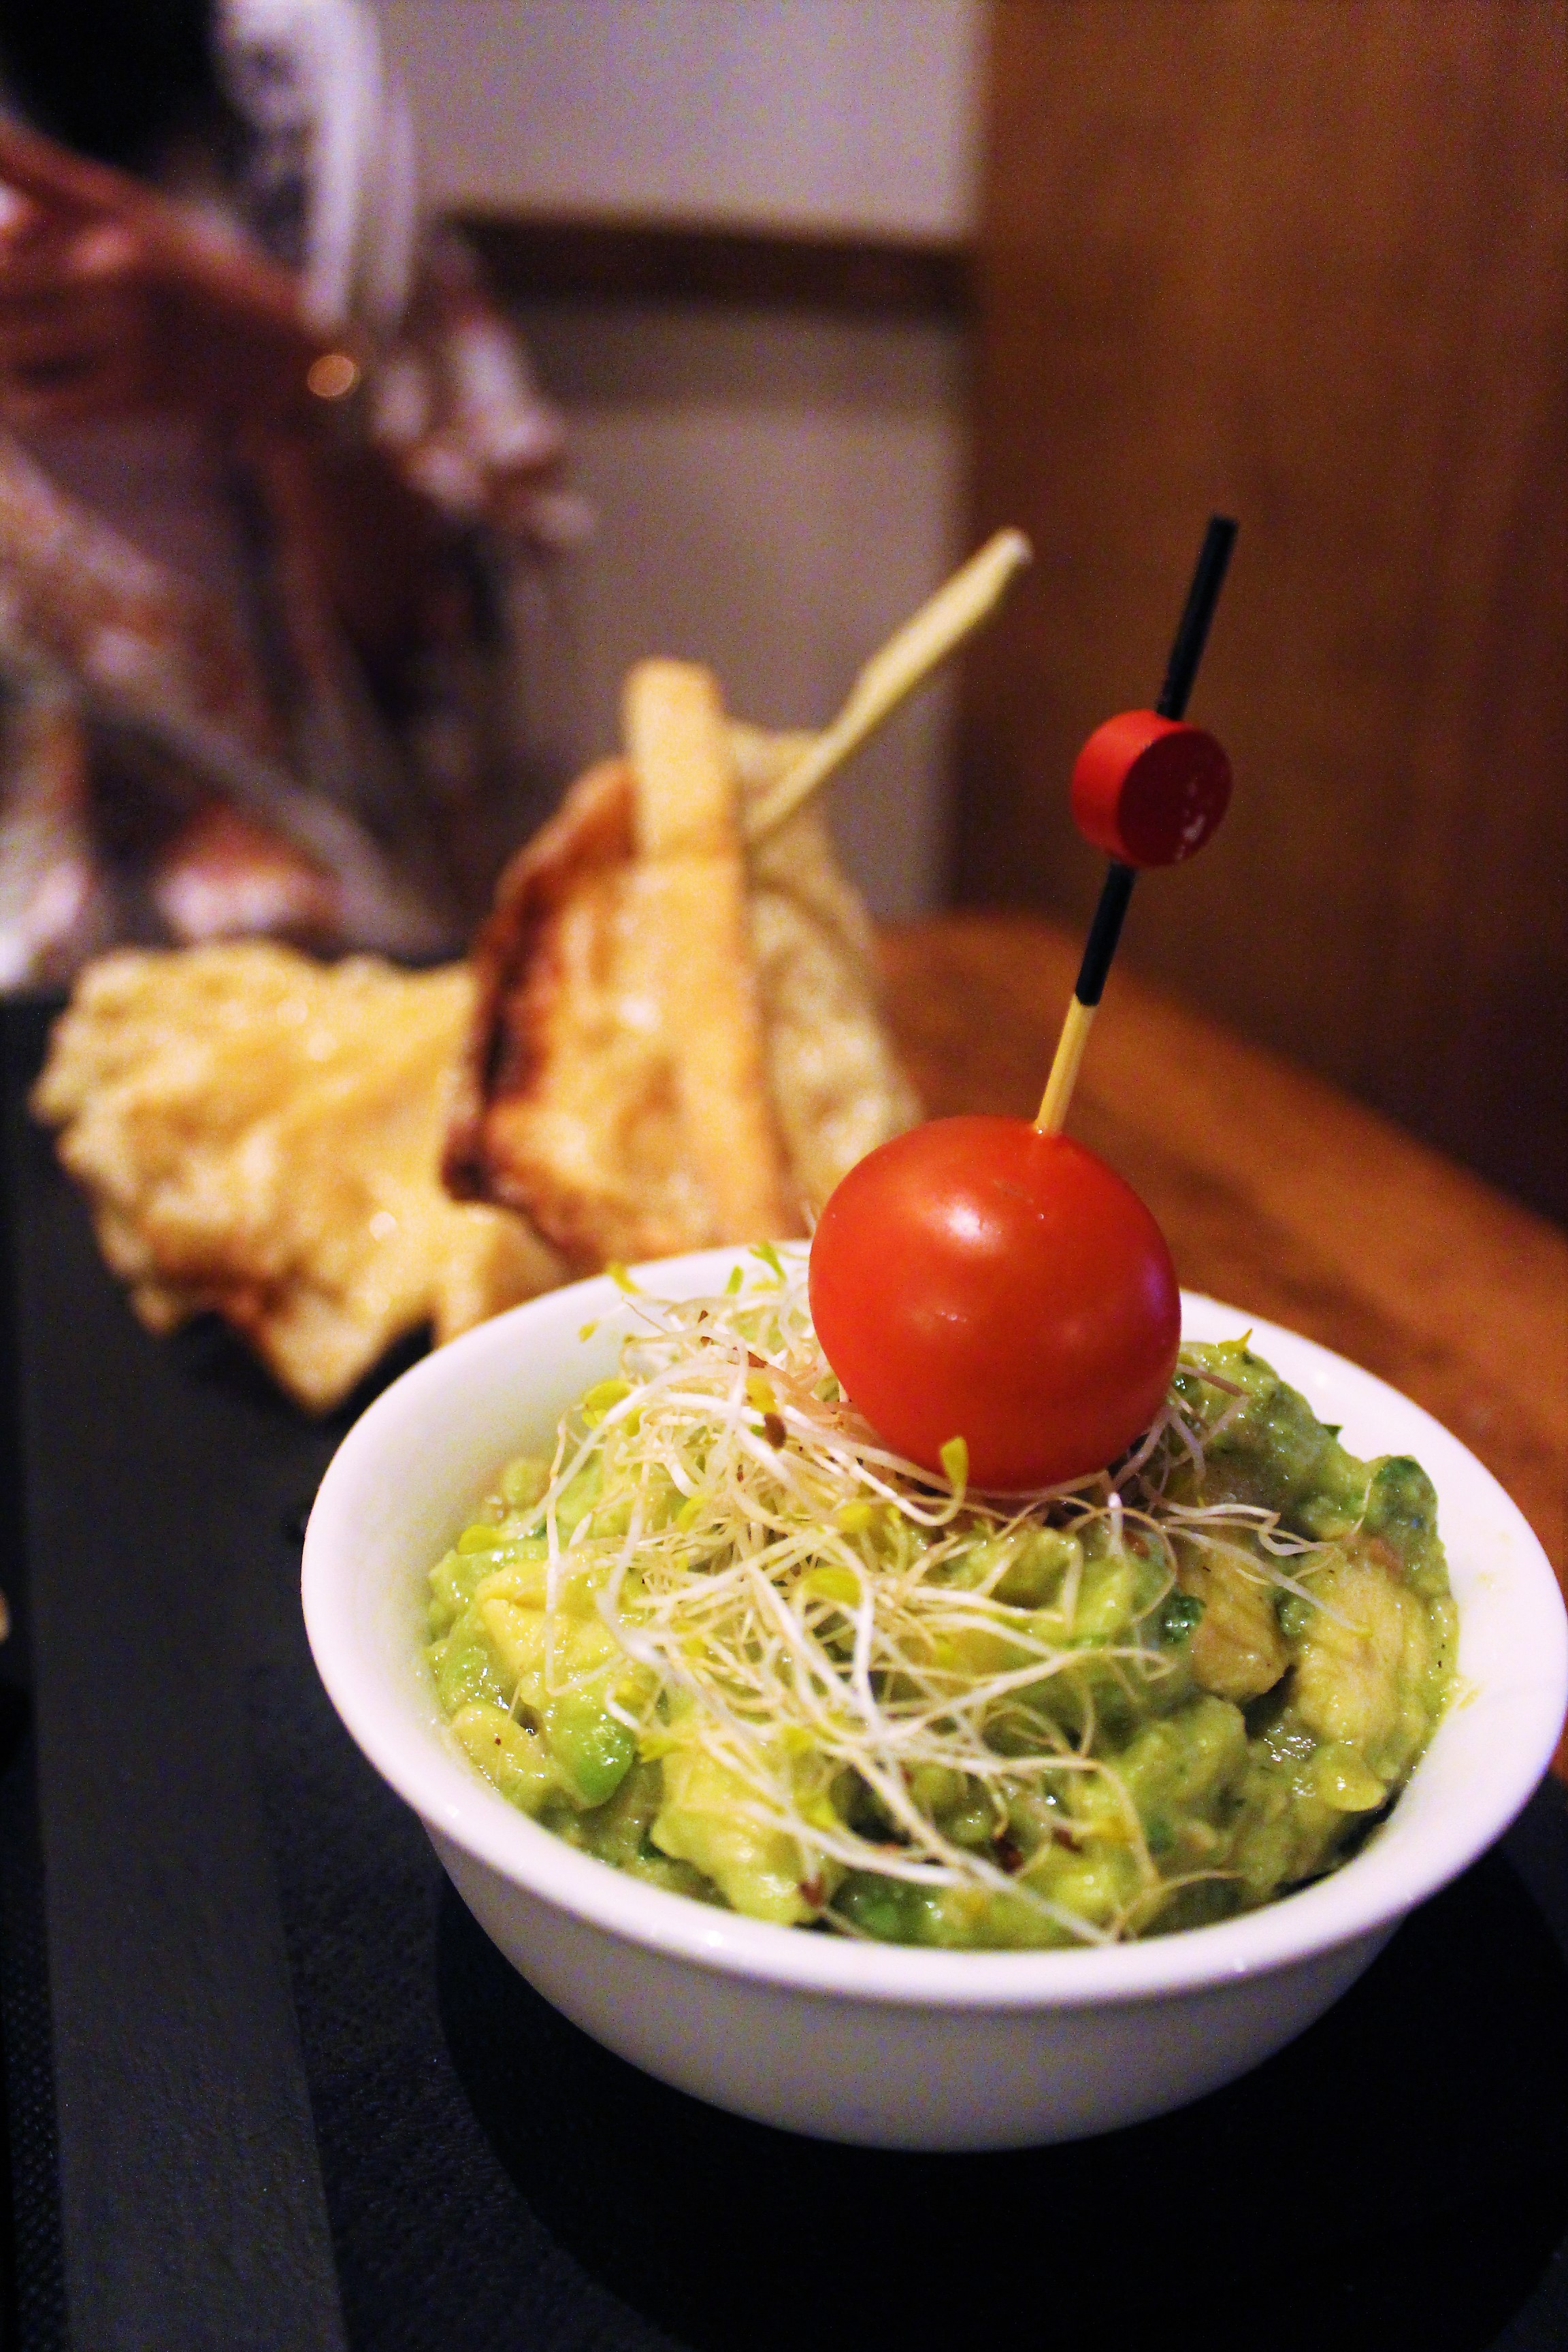 Guacamole, Coriander, and Mild Chili Pepper on Parmesan Base Torrada at Eldiset in Barcelona